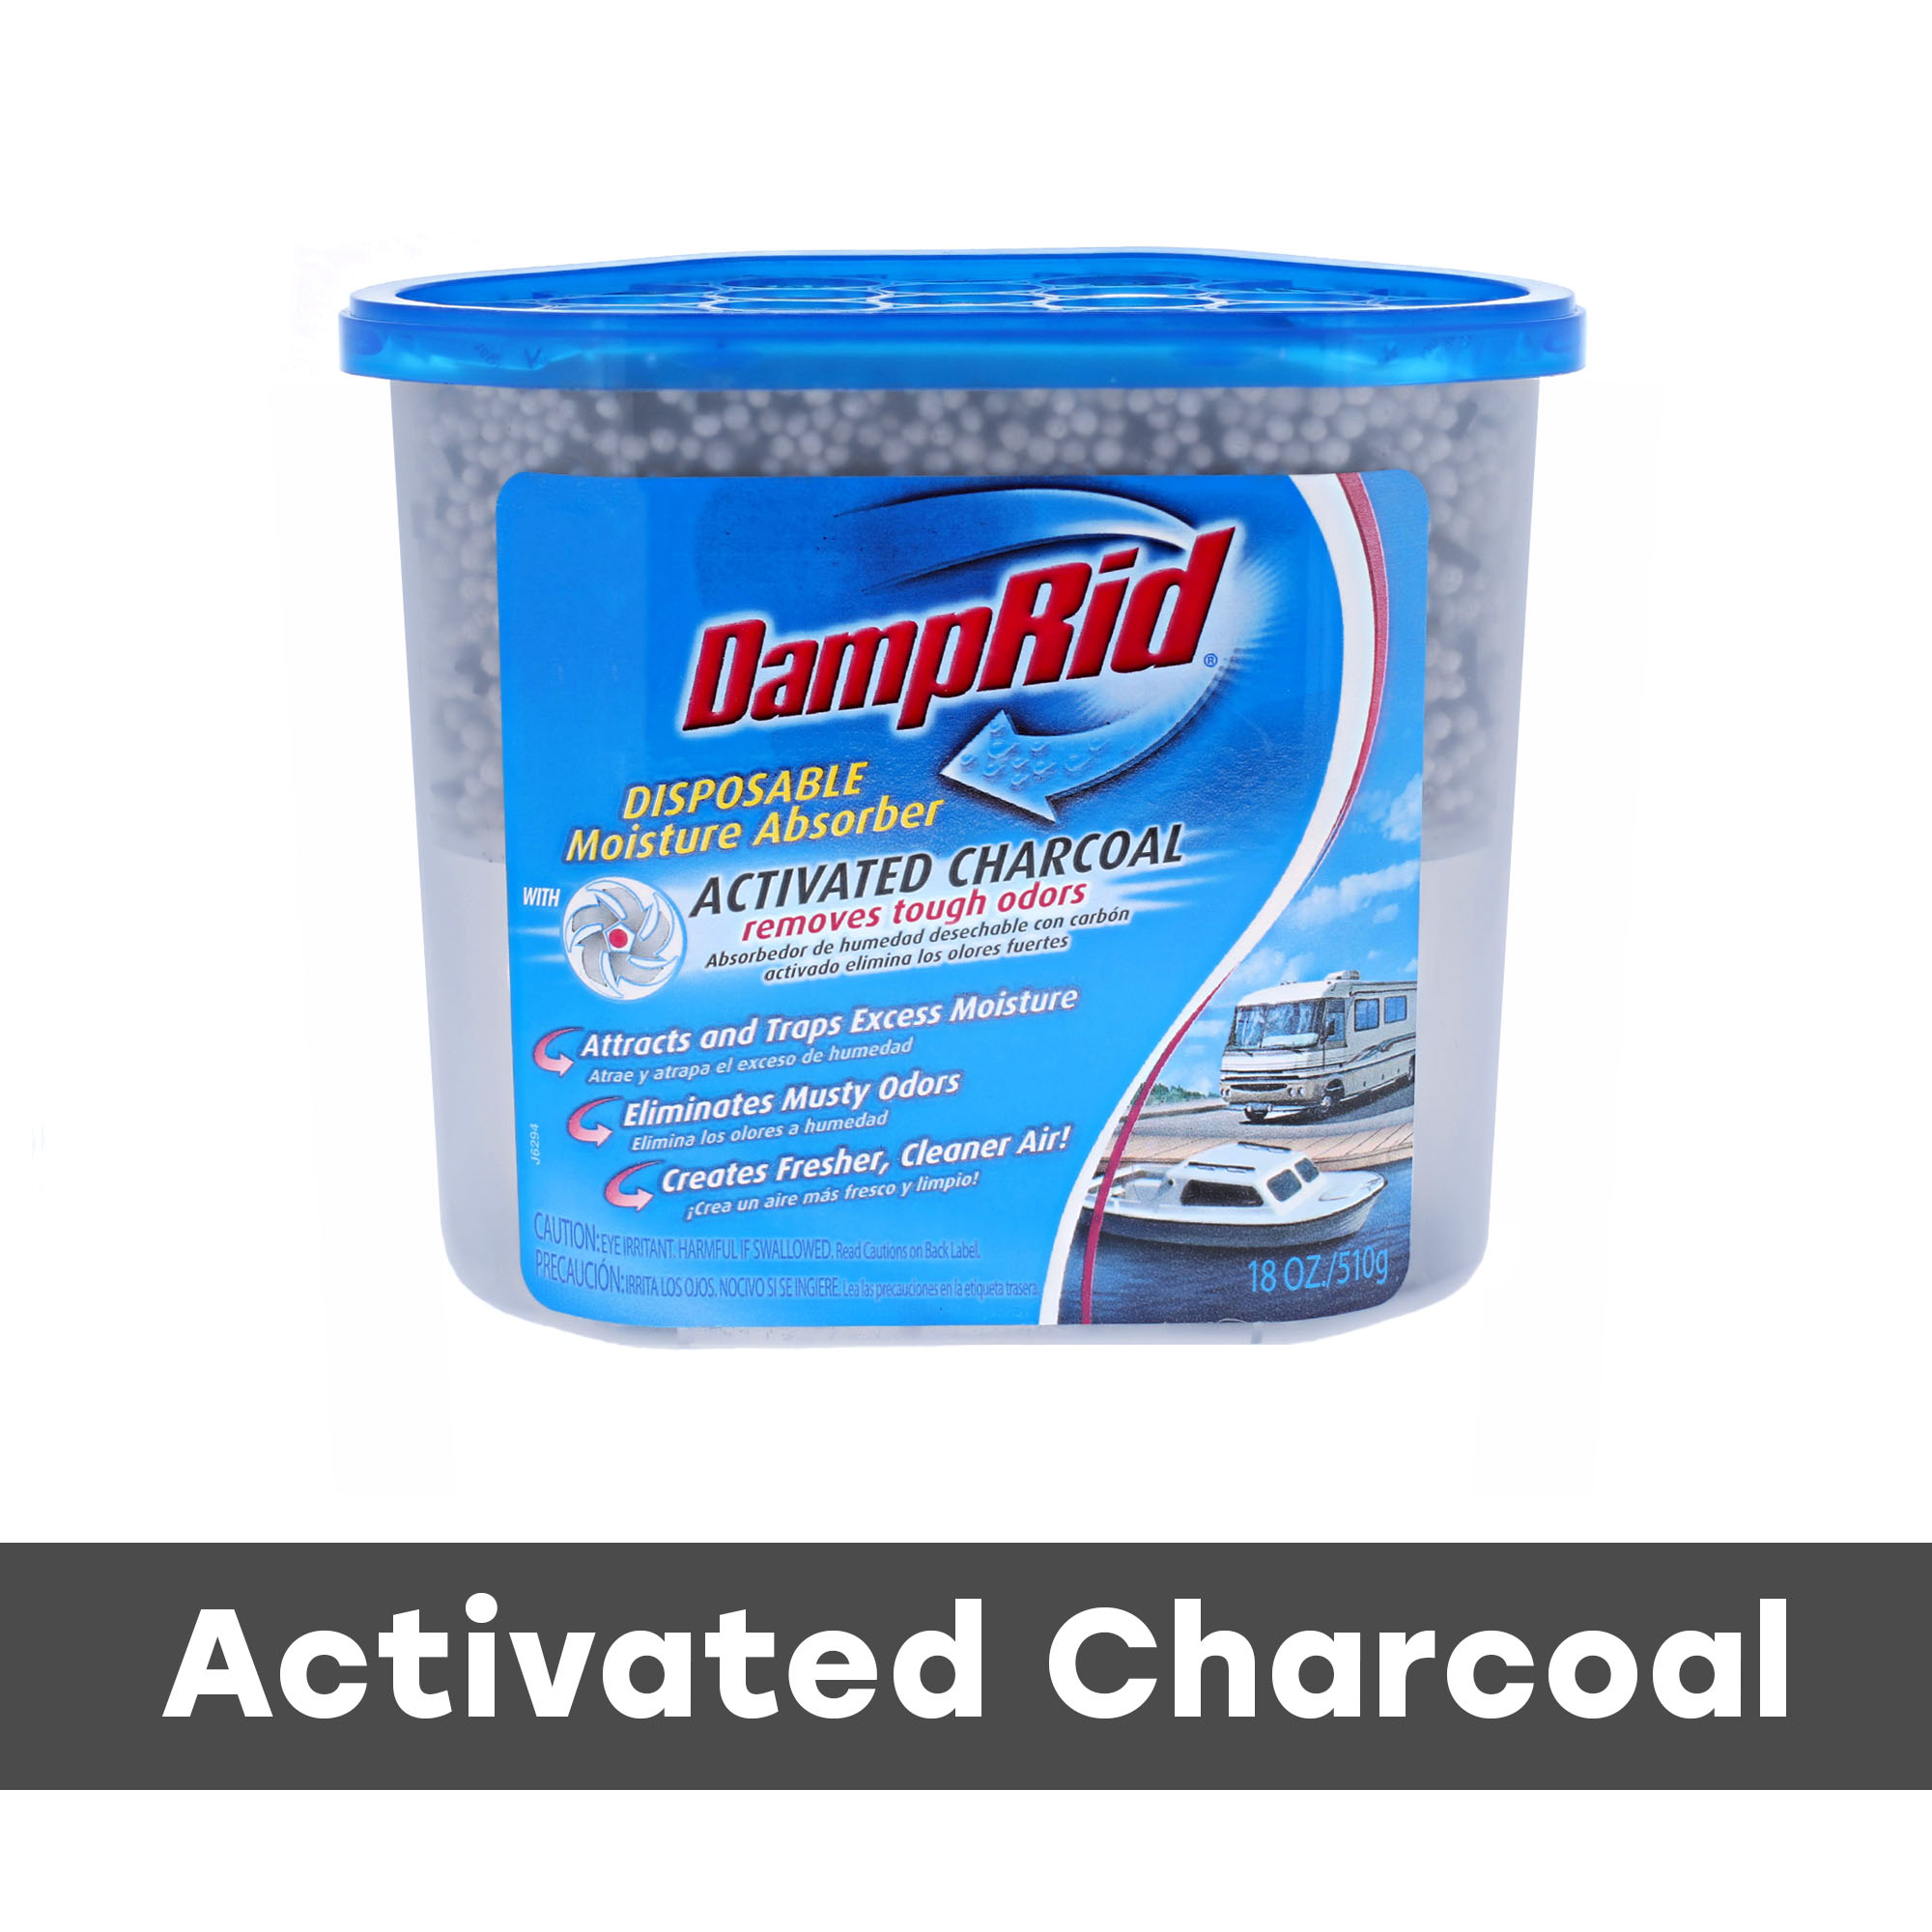 DampRid Fragrance Free Moisture Absorber with Charcoal for Boats & RVs